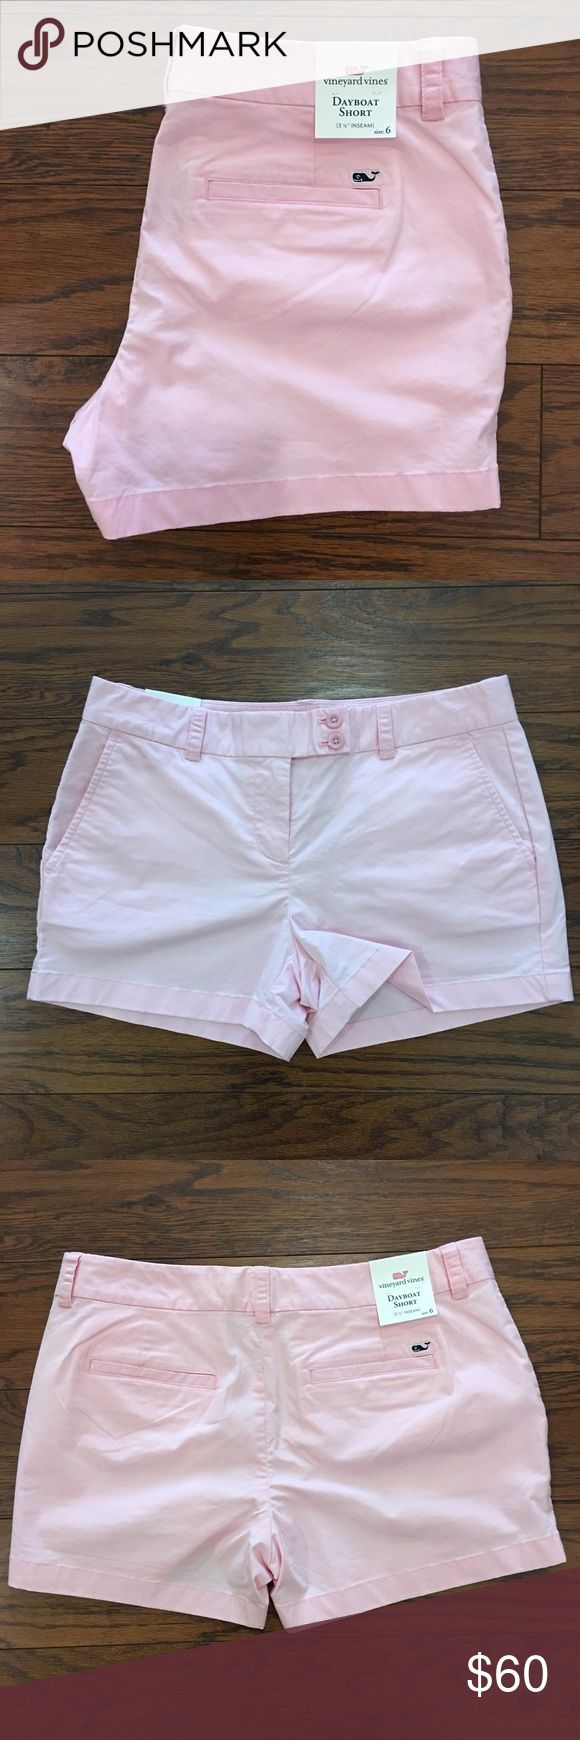 Vineyard Vines Dayboat Shorts New With Tags ✨ Machine washable / Tumble Dry 98% Cotton / 2% Spandex 3.5 inch inseam Comfortable material NOT from the outlet Vineyard Vines Shorts